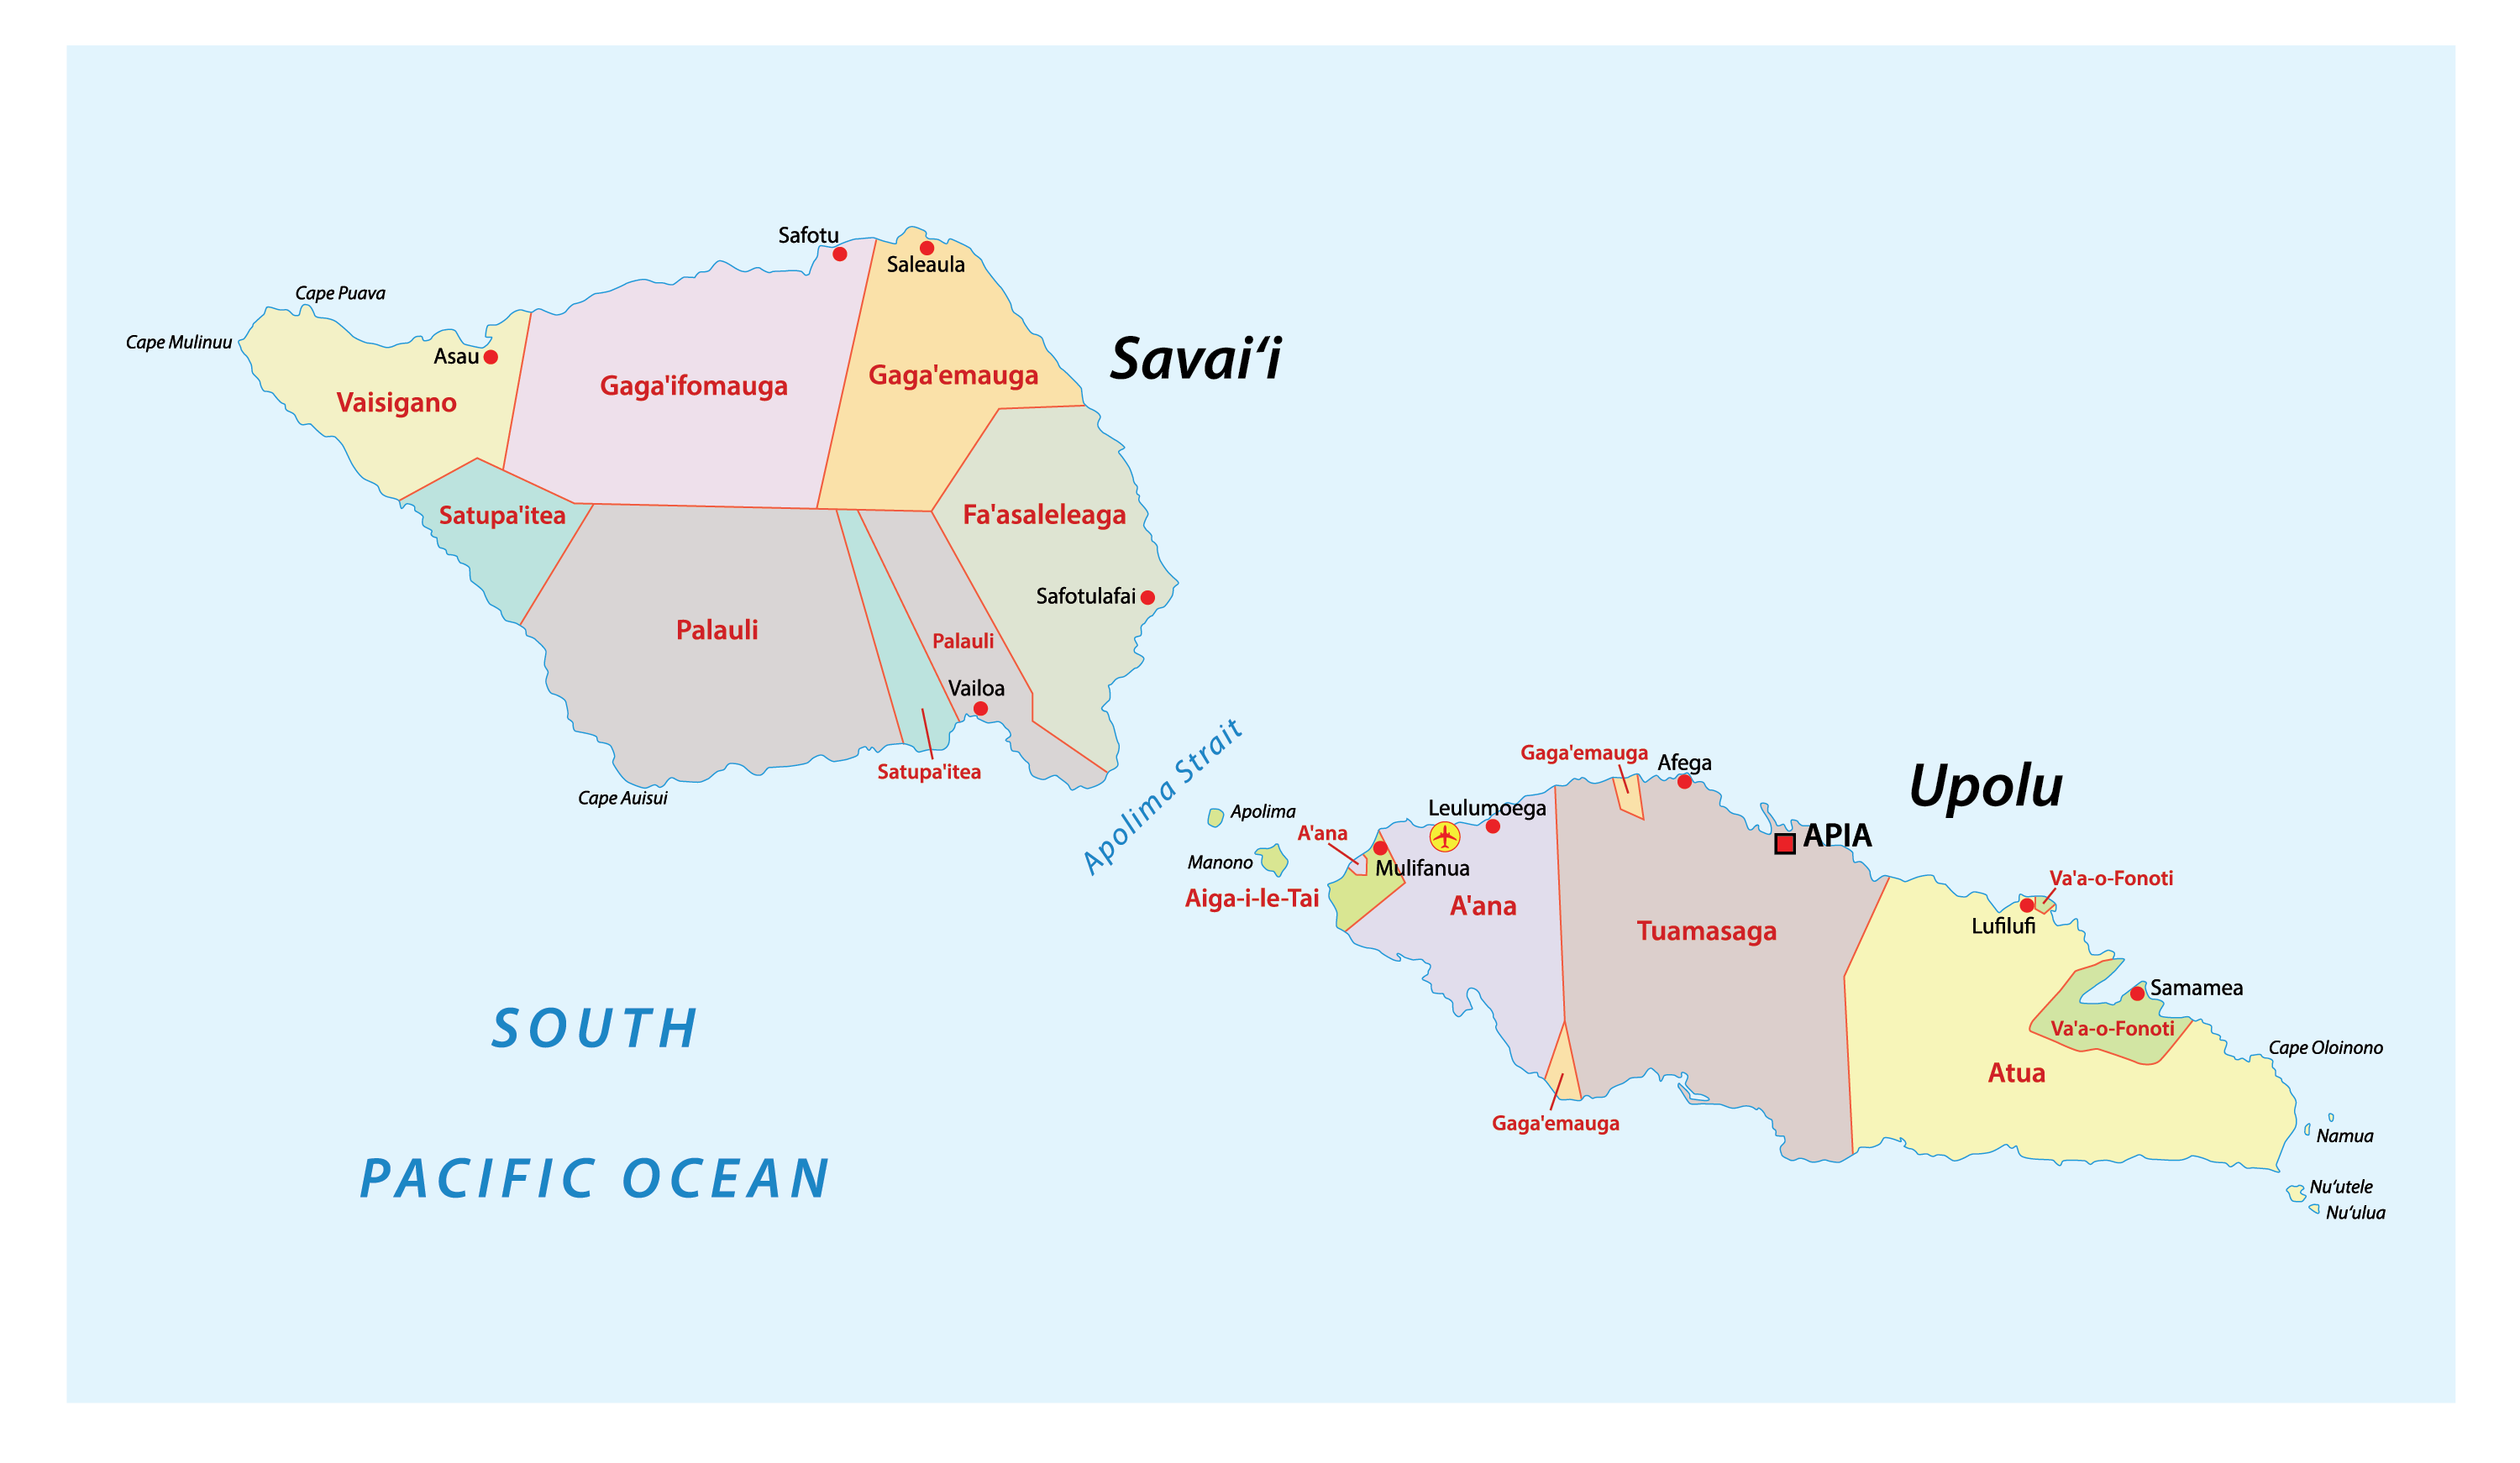 Political Map of Samoa showing its 11 districts and the capital Apia